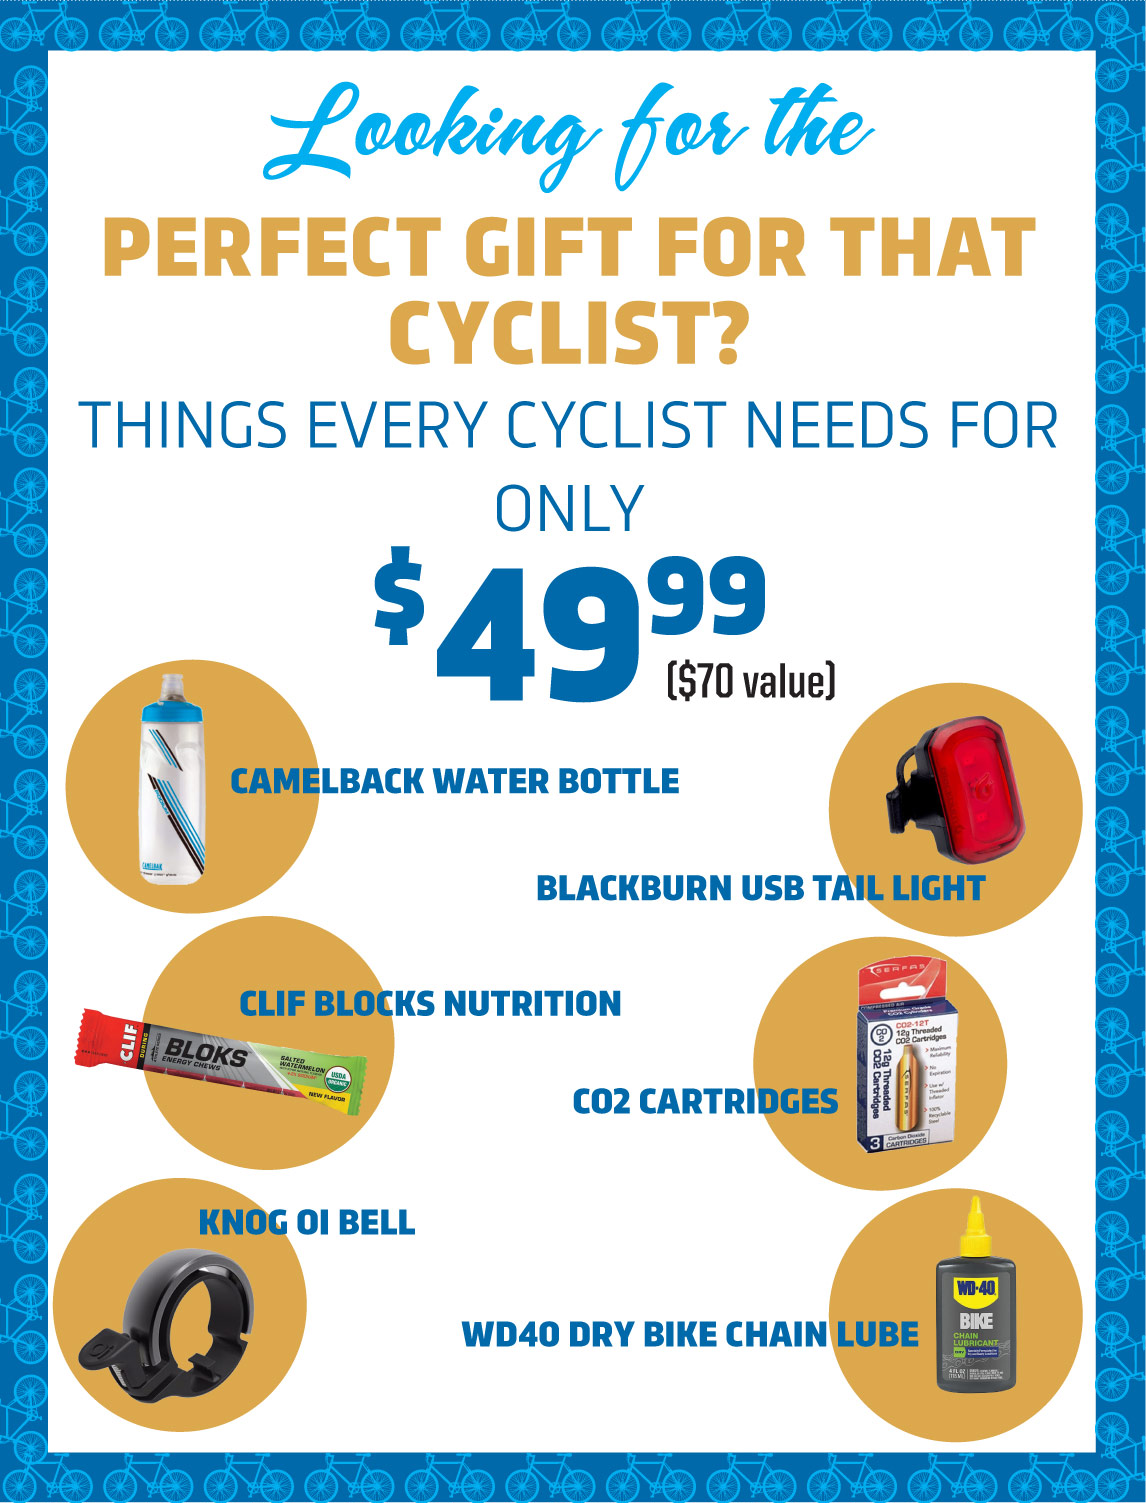 Gifts for Cyclists. Gift bags with everything they need for only $49.99